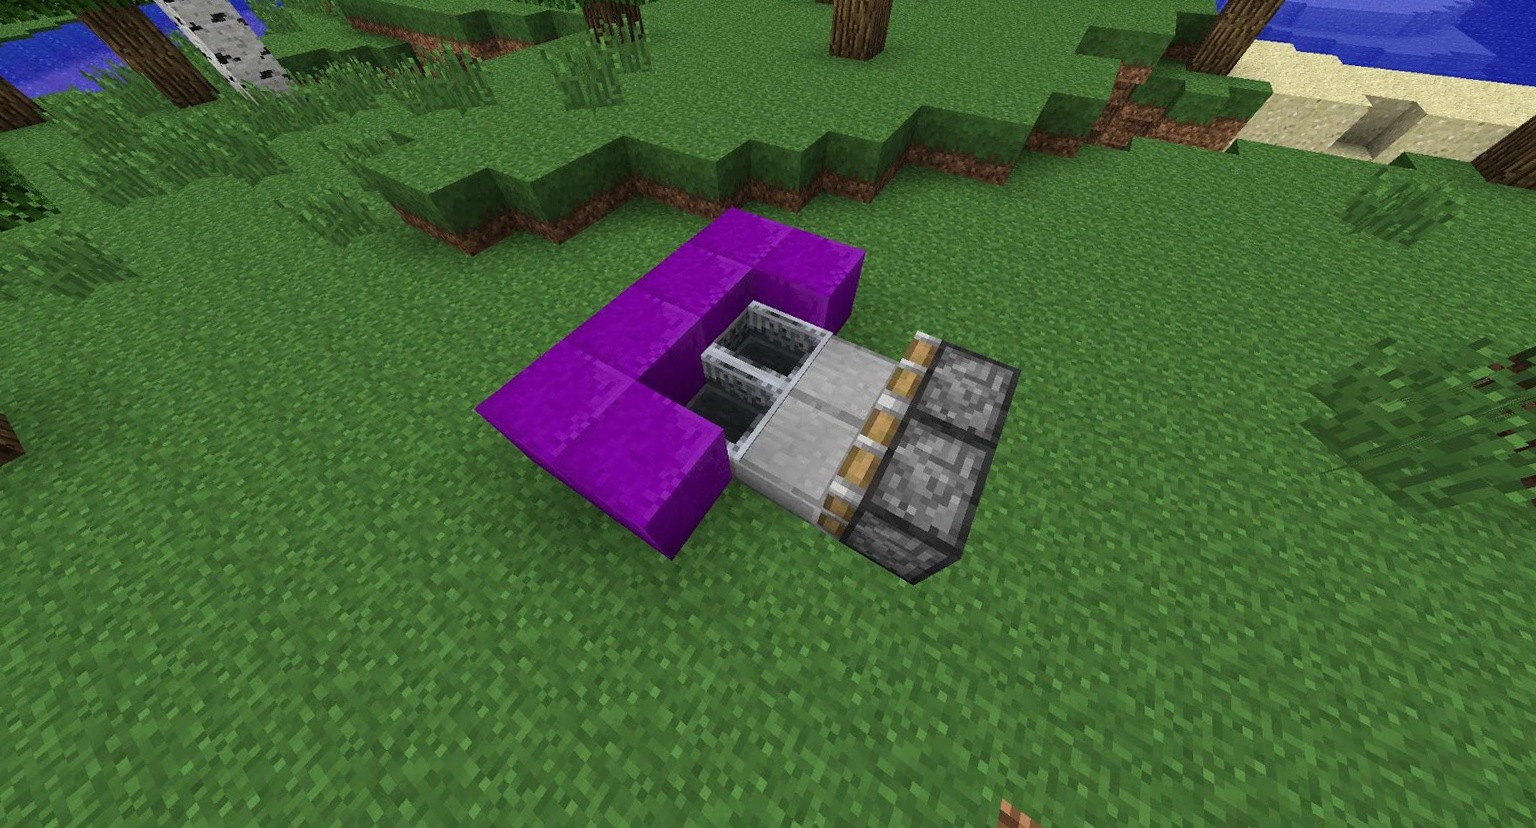 How To Build A Sofa In Minecraft